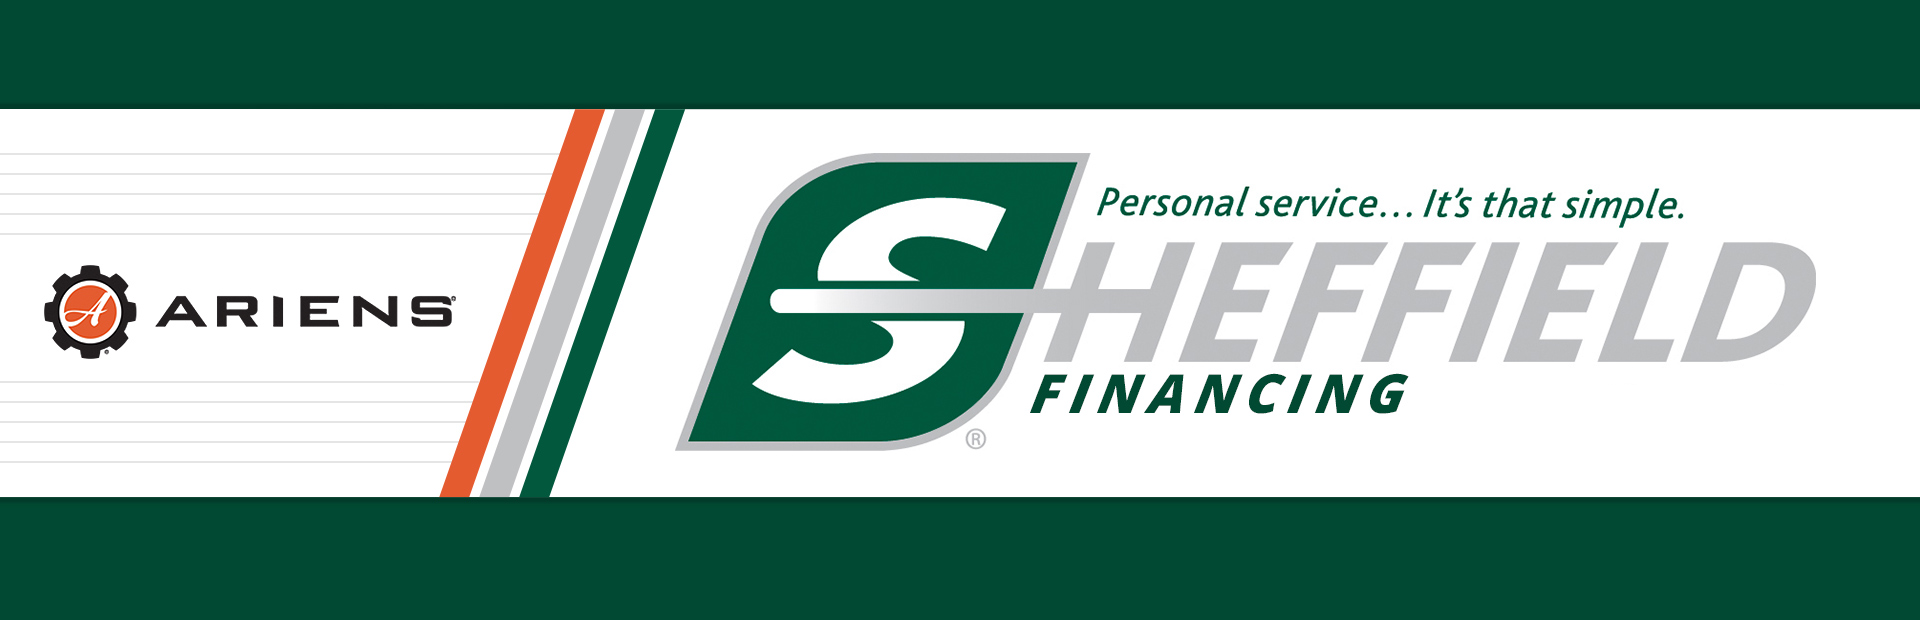 Ariens: Sheffield Financial